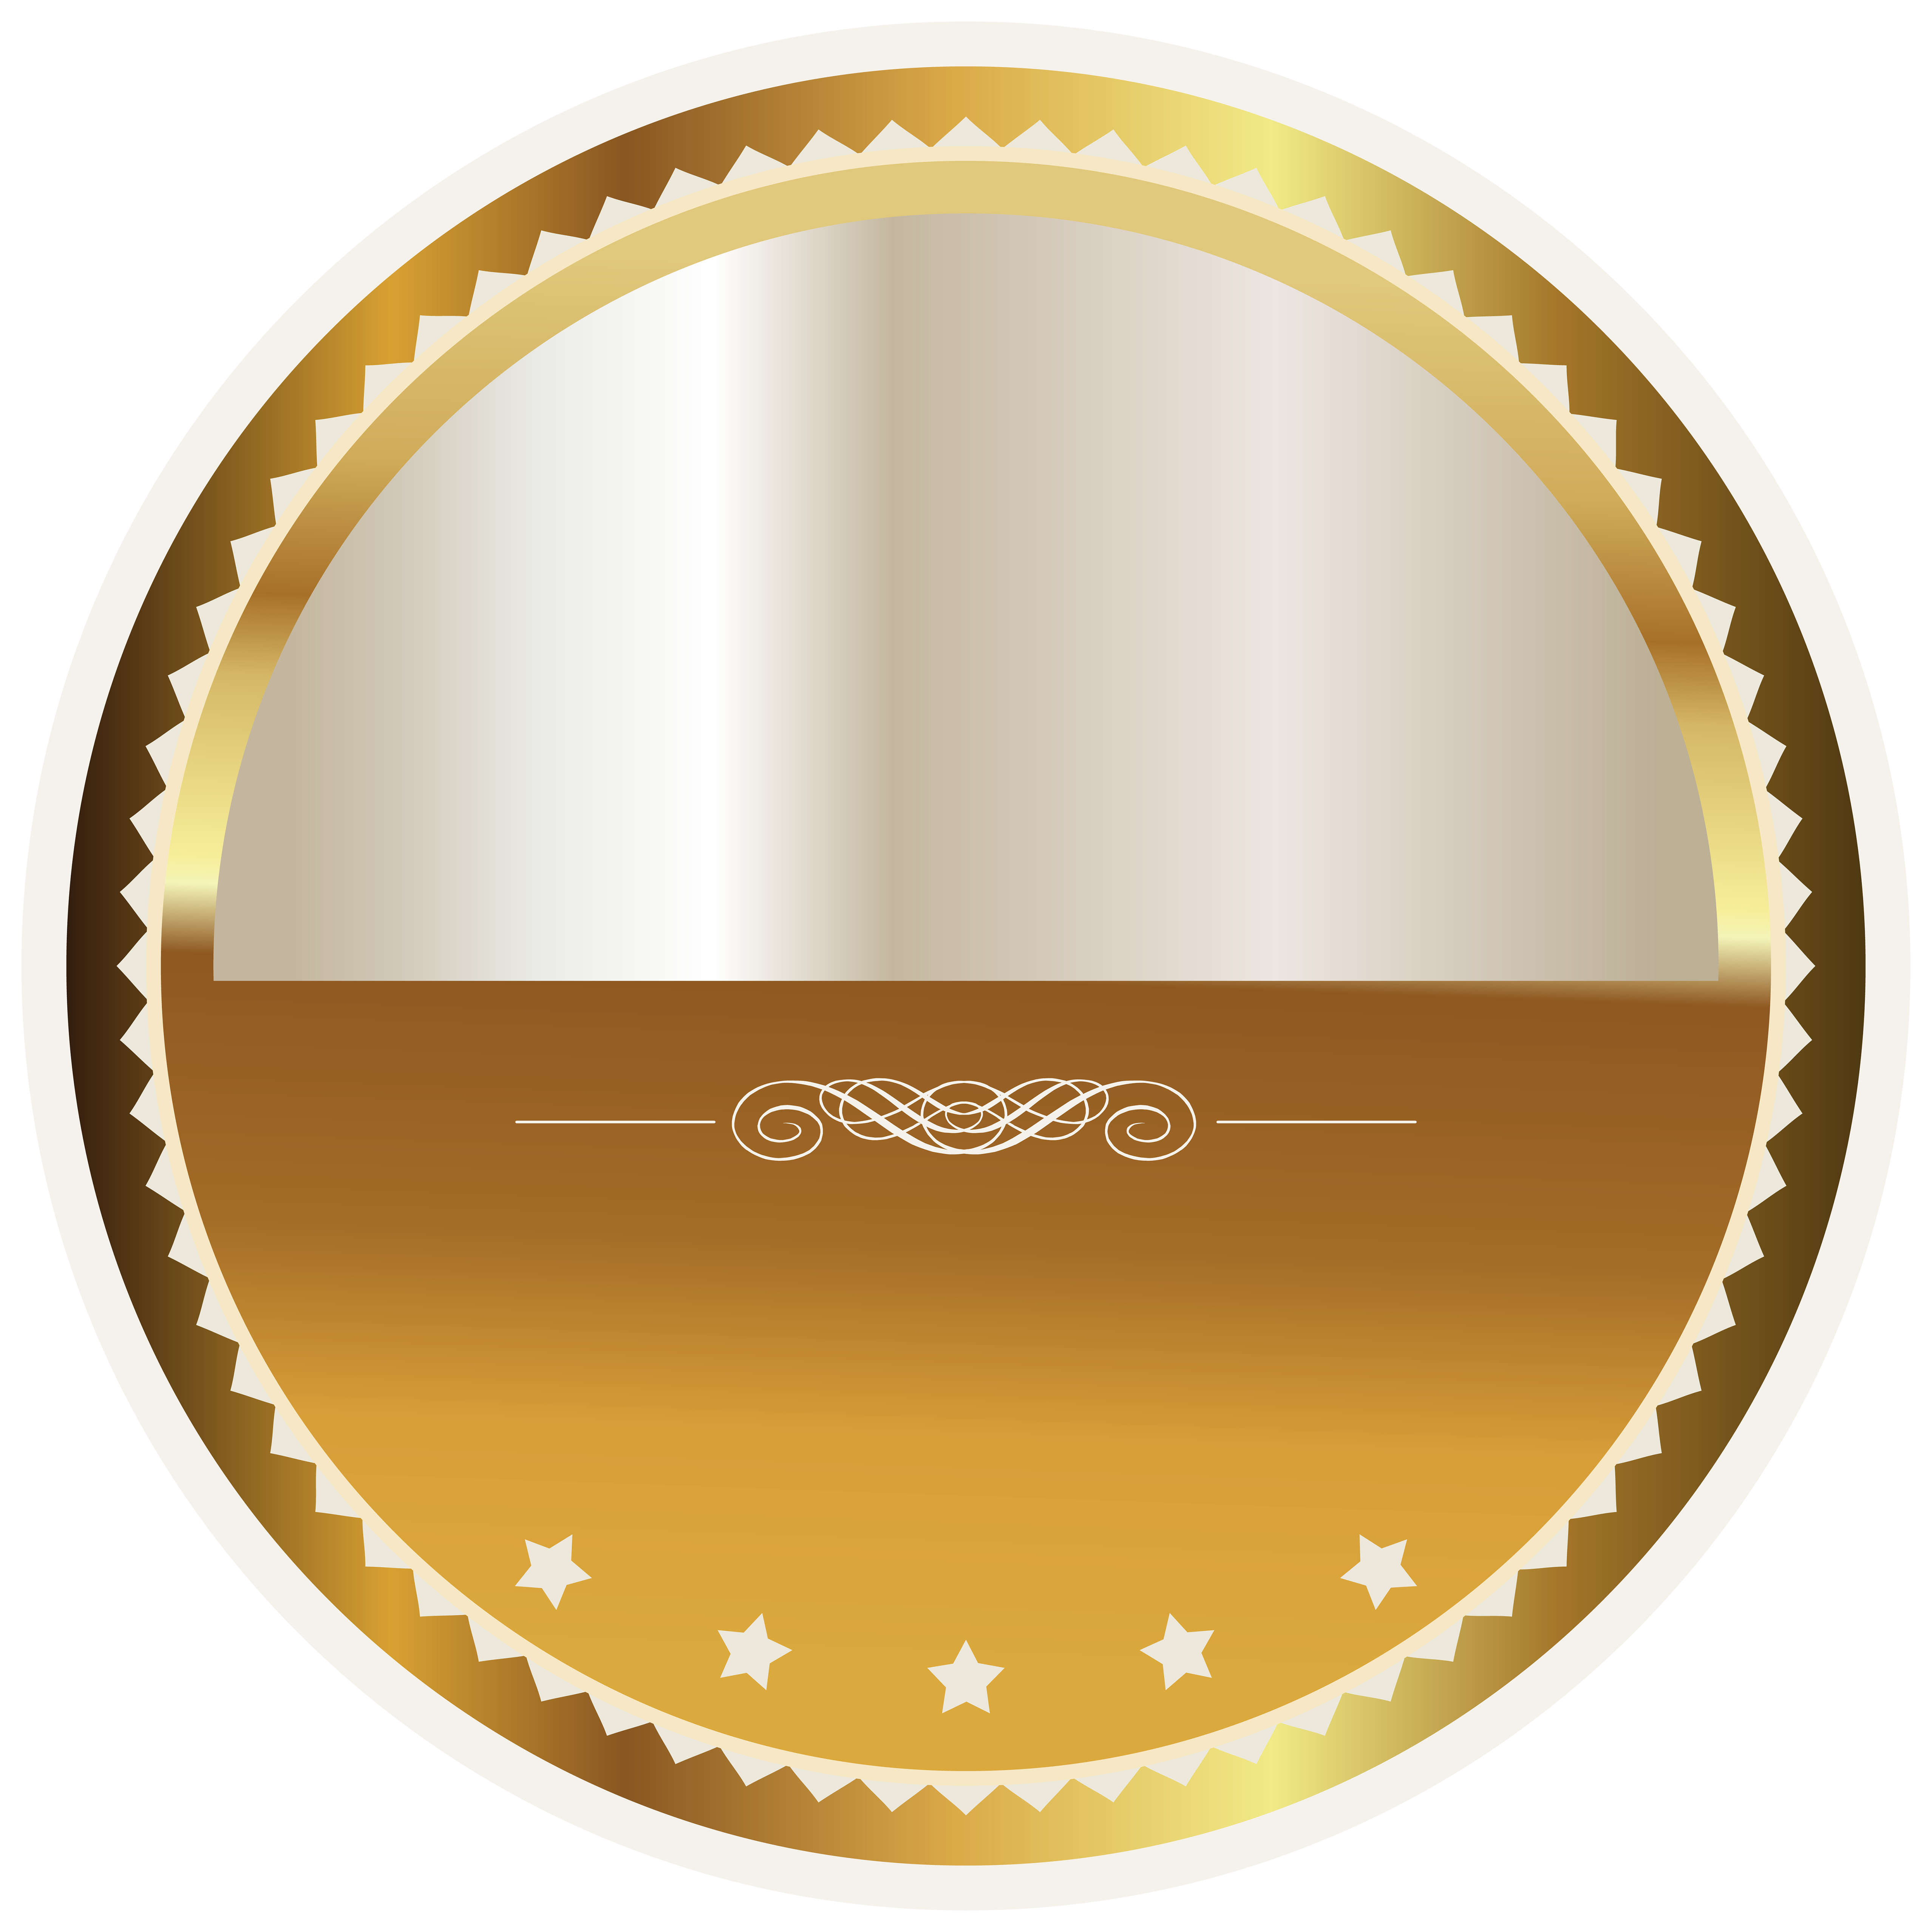 Badges and labels clipart png royalty free library Gold and White Seal Badge PNG Clipart Picture | Gallery ... png royalty free library